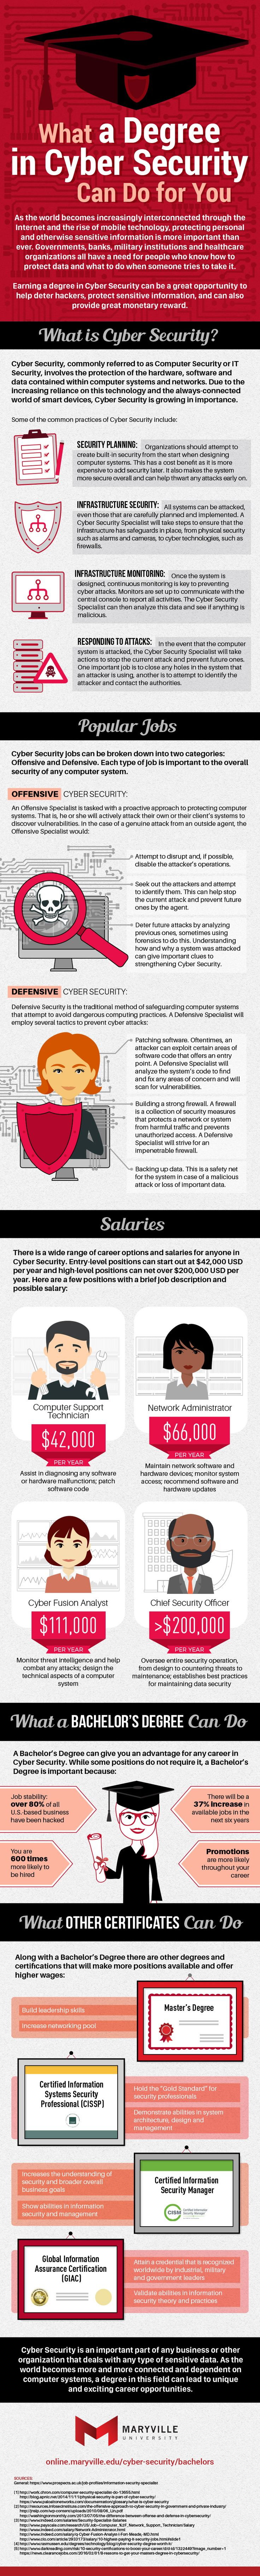 What a Degree In Cyber Security Can Do For You #Infographic #Education #Security